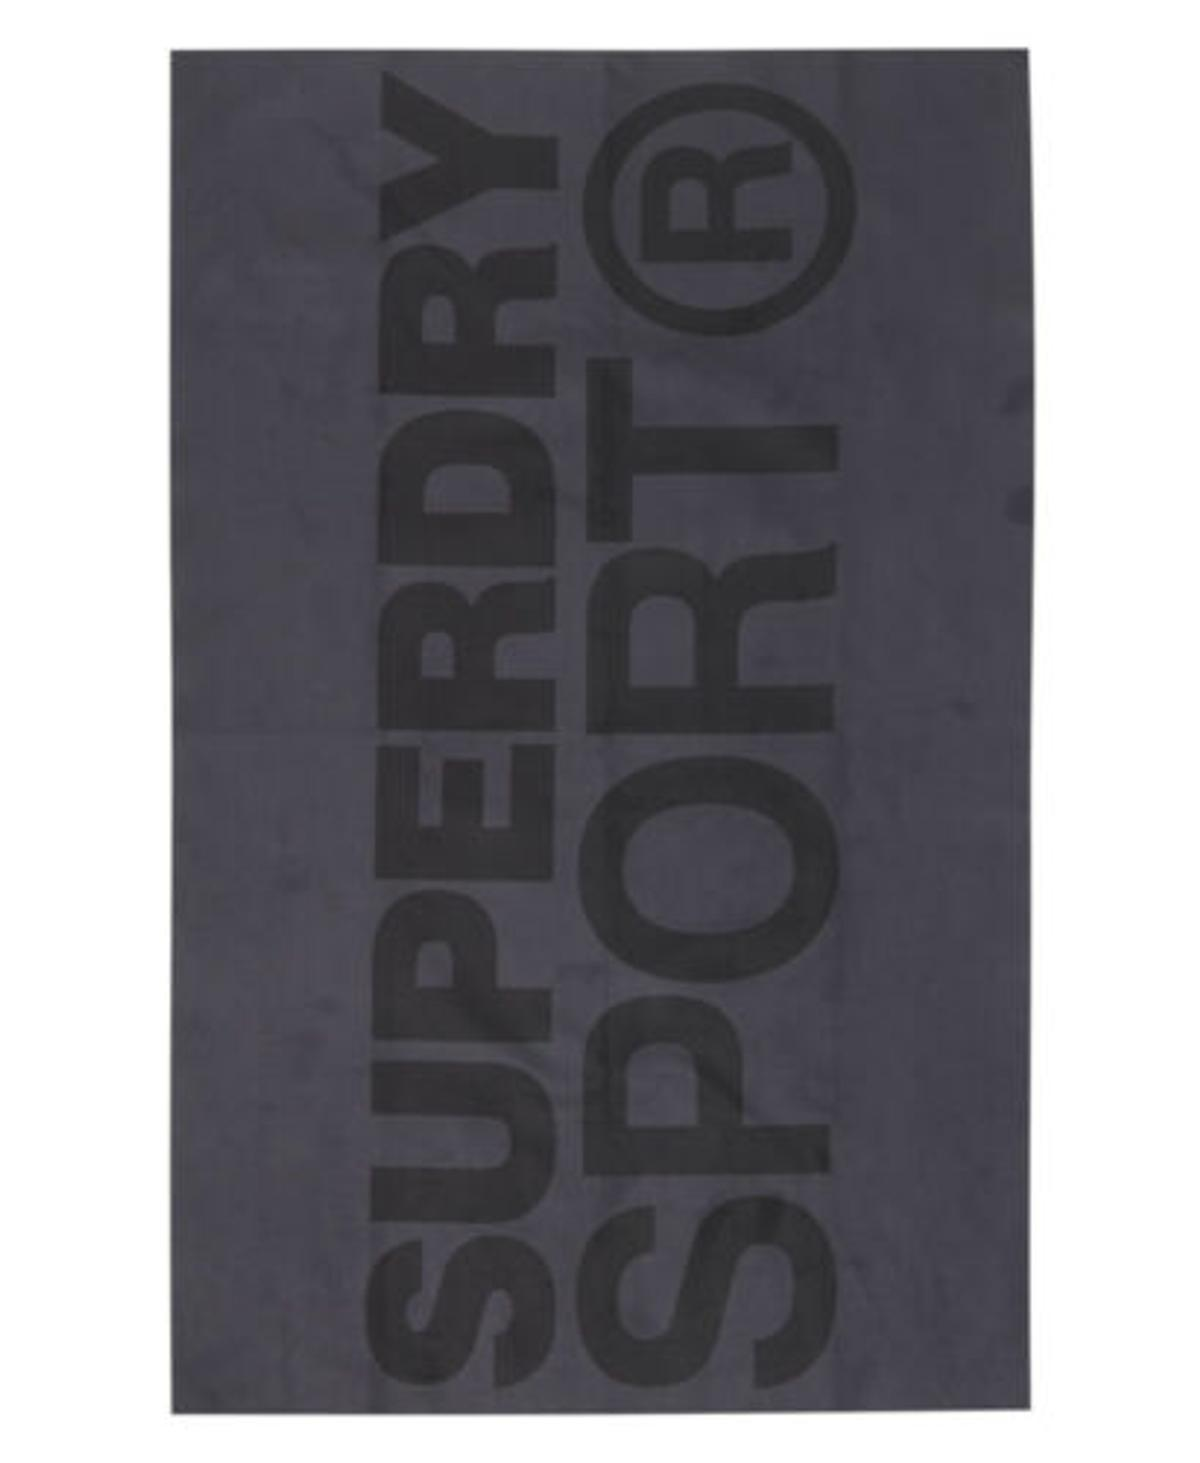 Superdry Sports microfibre towel. The Sports microfibre towel is an essential for any workout. This lightweight towel features an all over Superdry logo print design and a hang tag with reflective detailing.  H 65cm x W 41cm  This item is brand new and in perfect condition. Please be aware that most items with printed logos are intentionally cracked for a vintage effect.